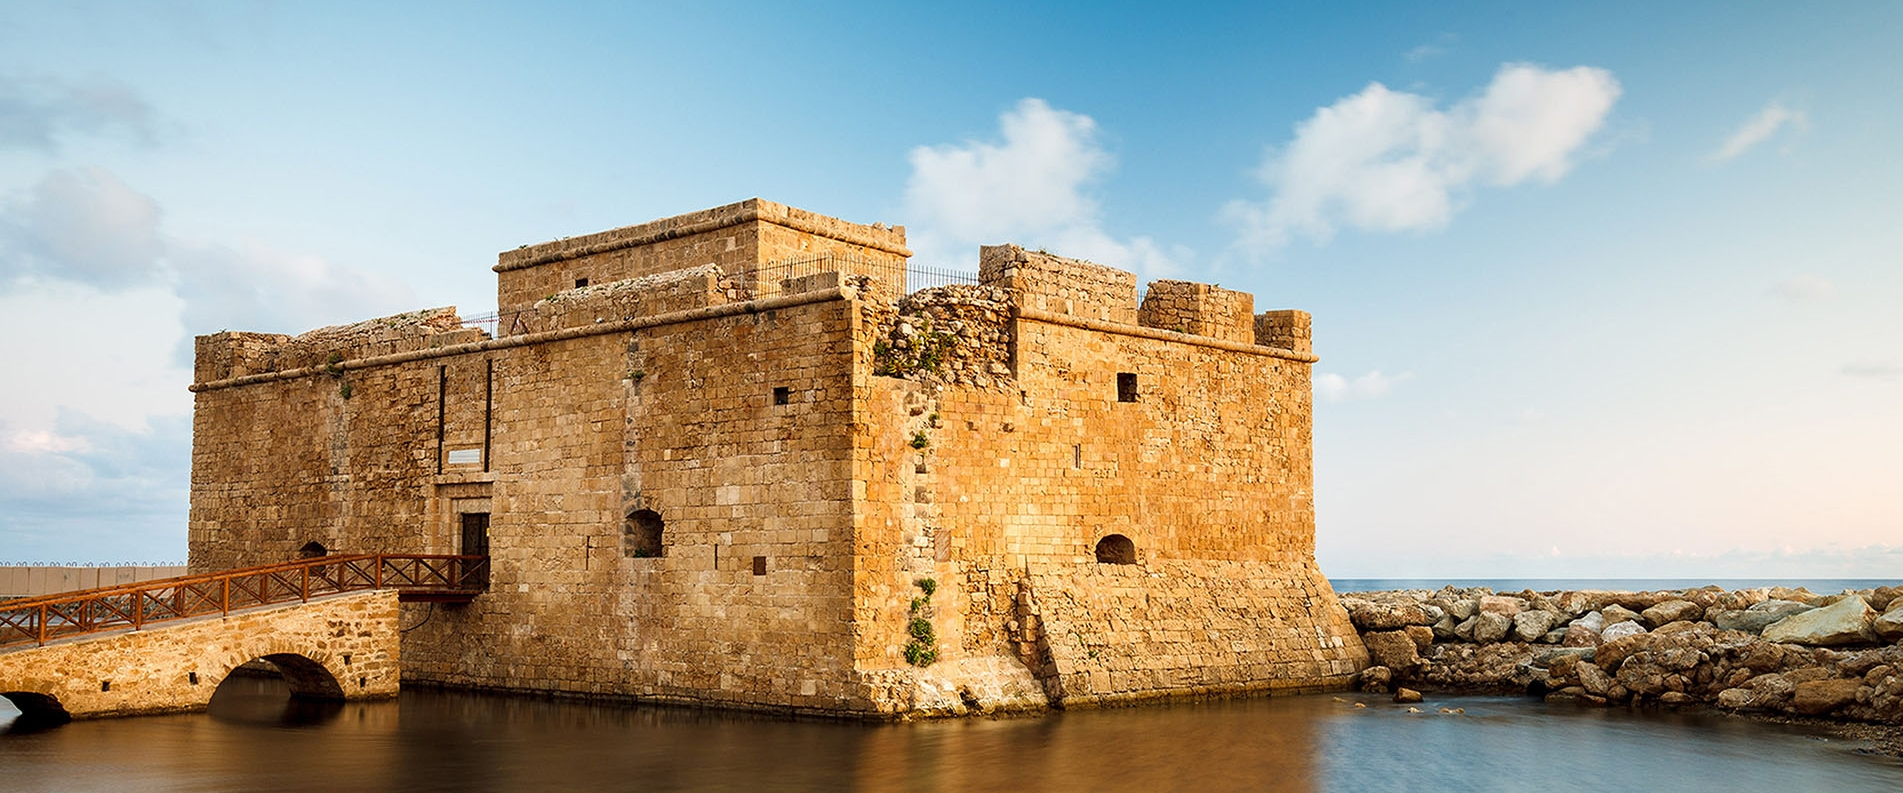 Cyprus castles and fortresses